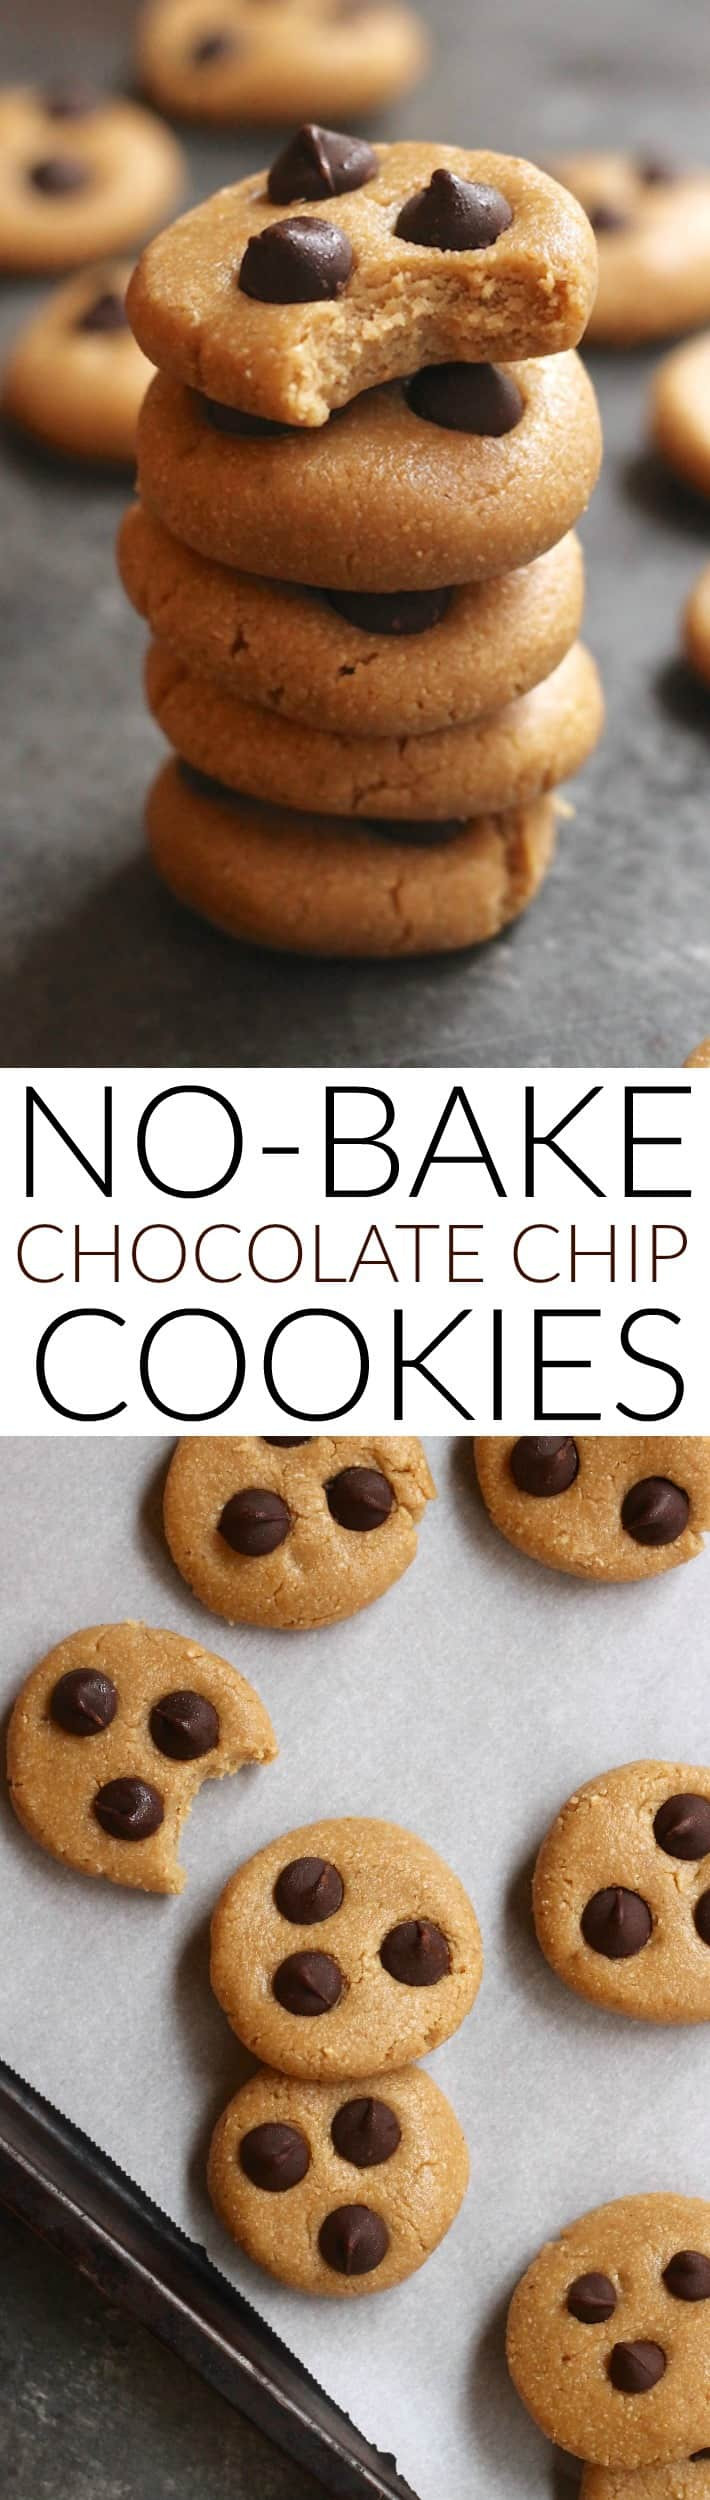 No Bake Chocolate Chip Cookies  Soft and Chewy No Bake Chocolate Chip Cookies